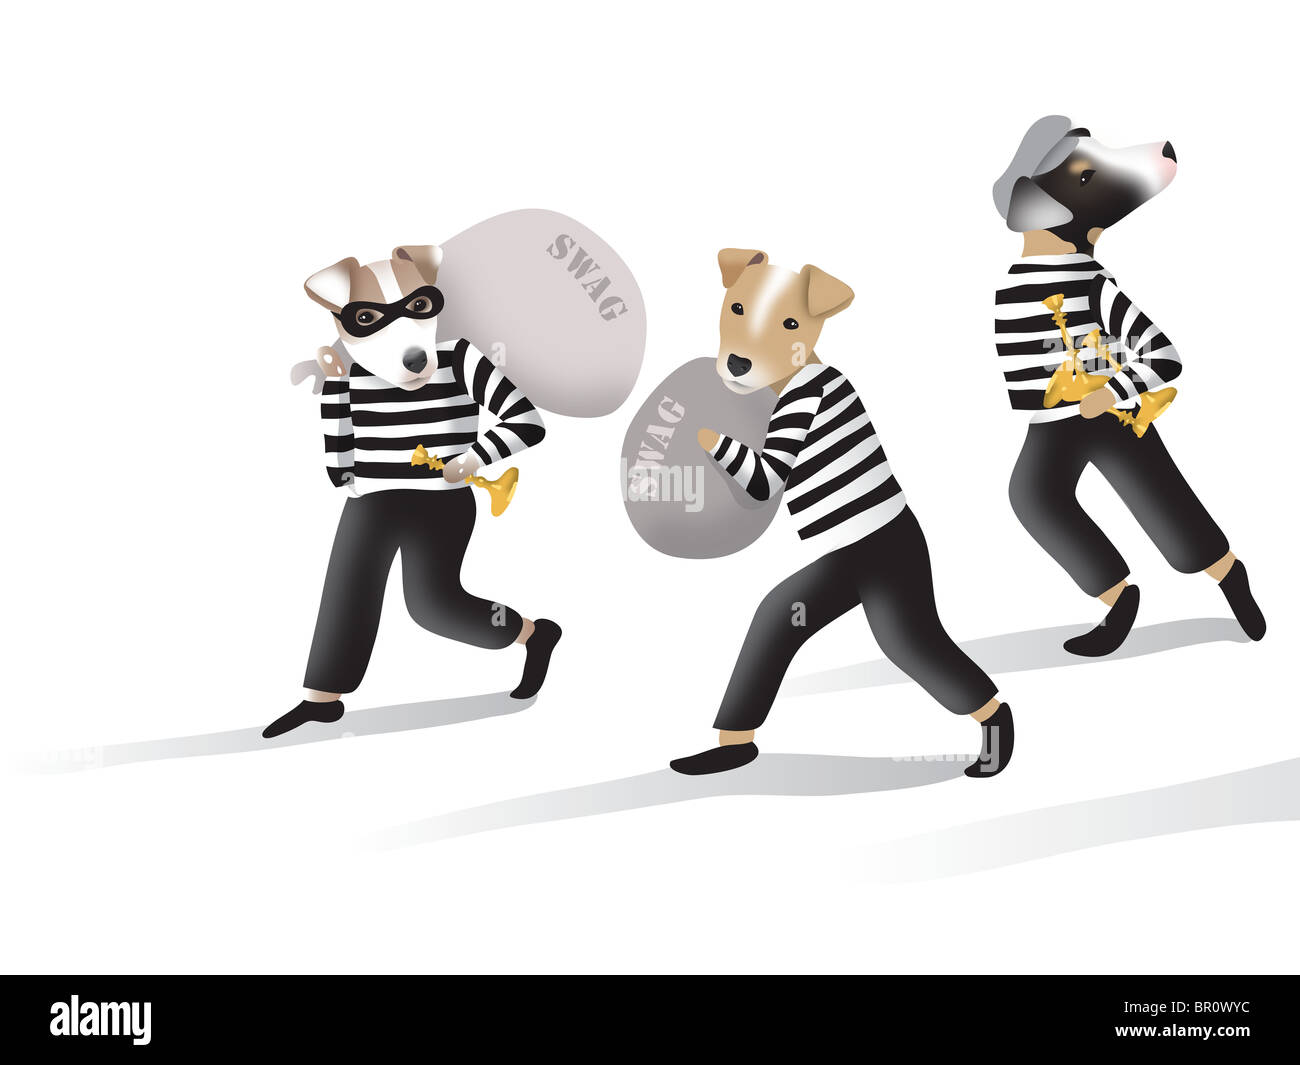 Dogs dressed as robbers with swag bag loot - Stock Image